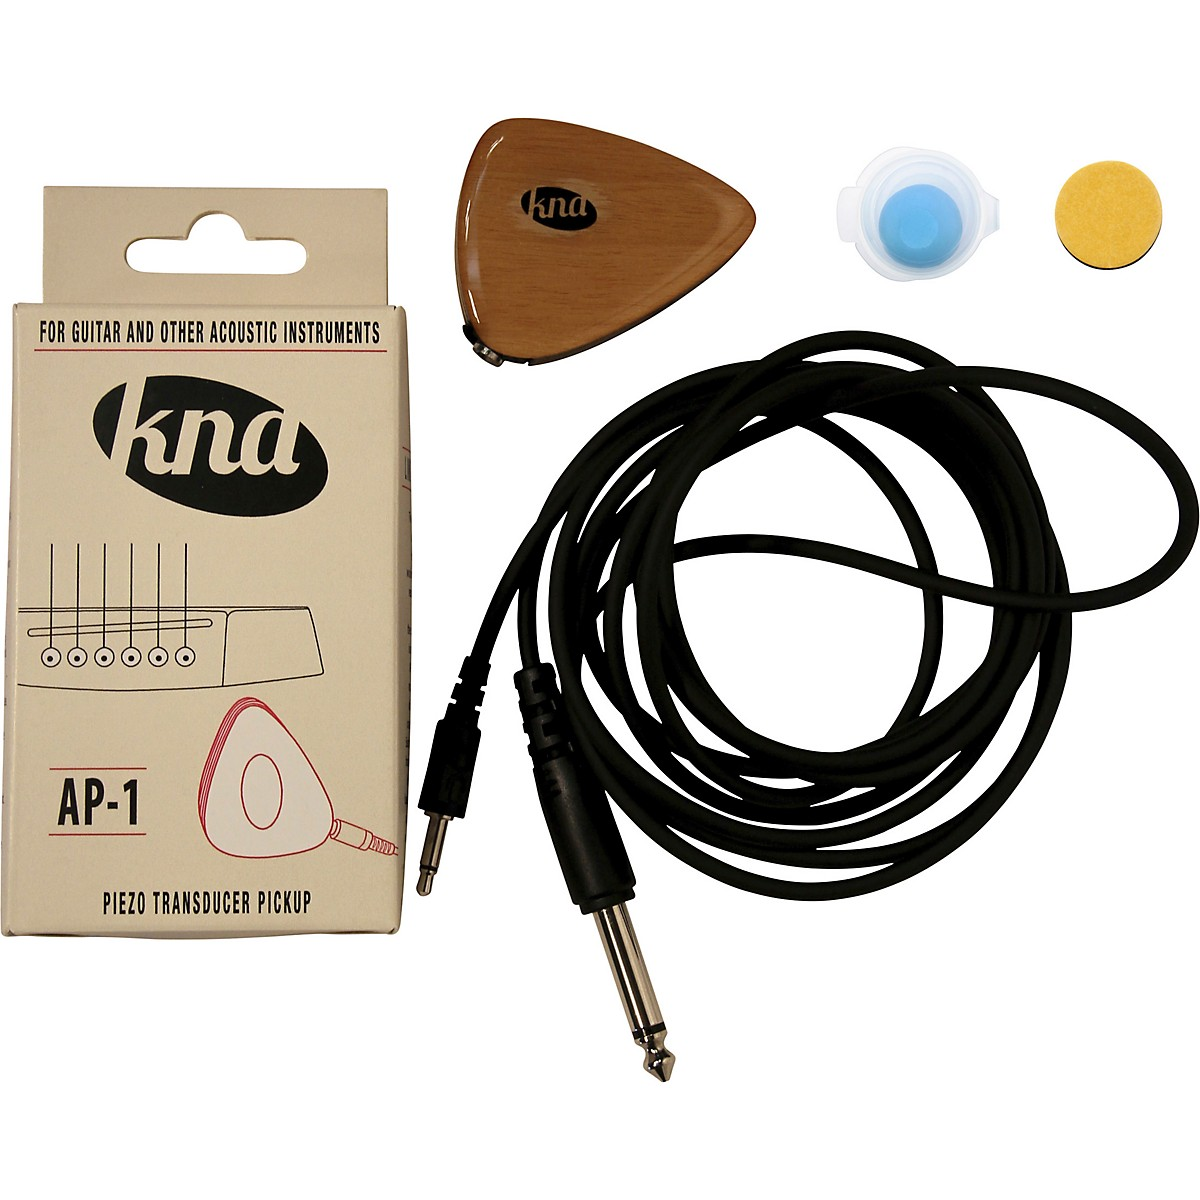 KNA AP-1 Portable Piezo for Guitar and Other Acoustic Instruments